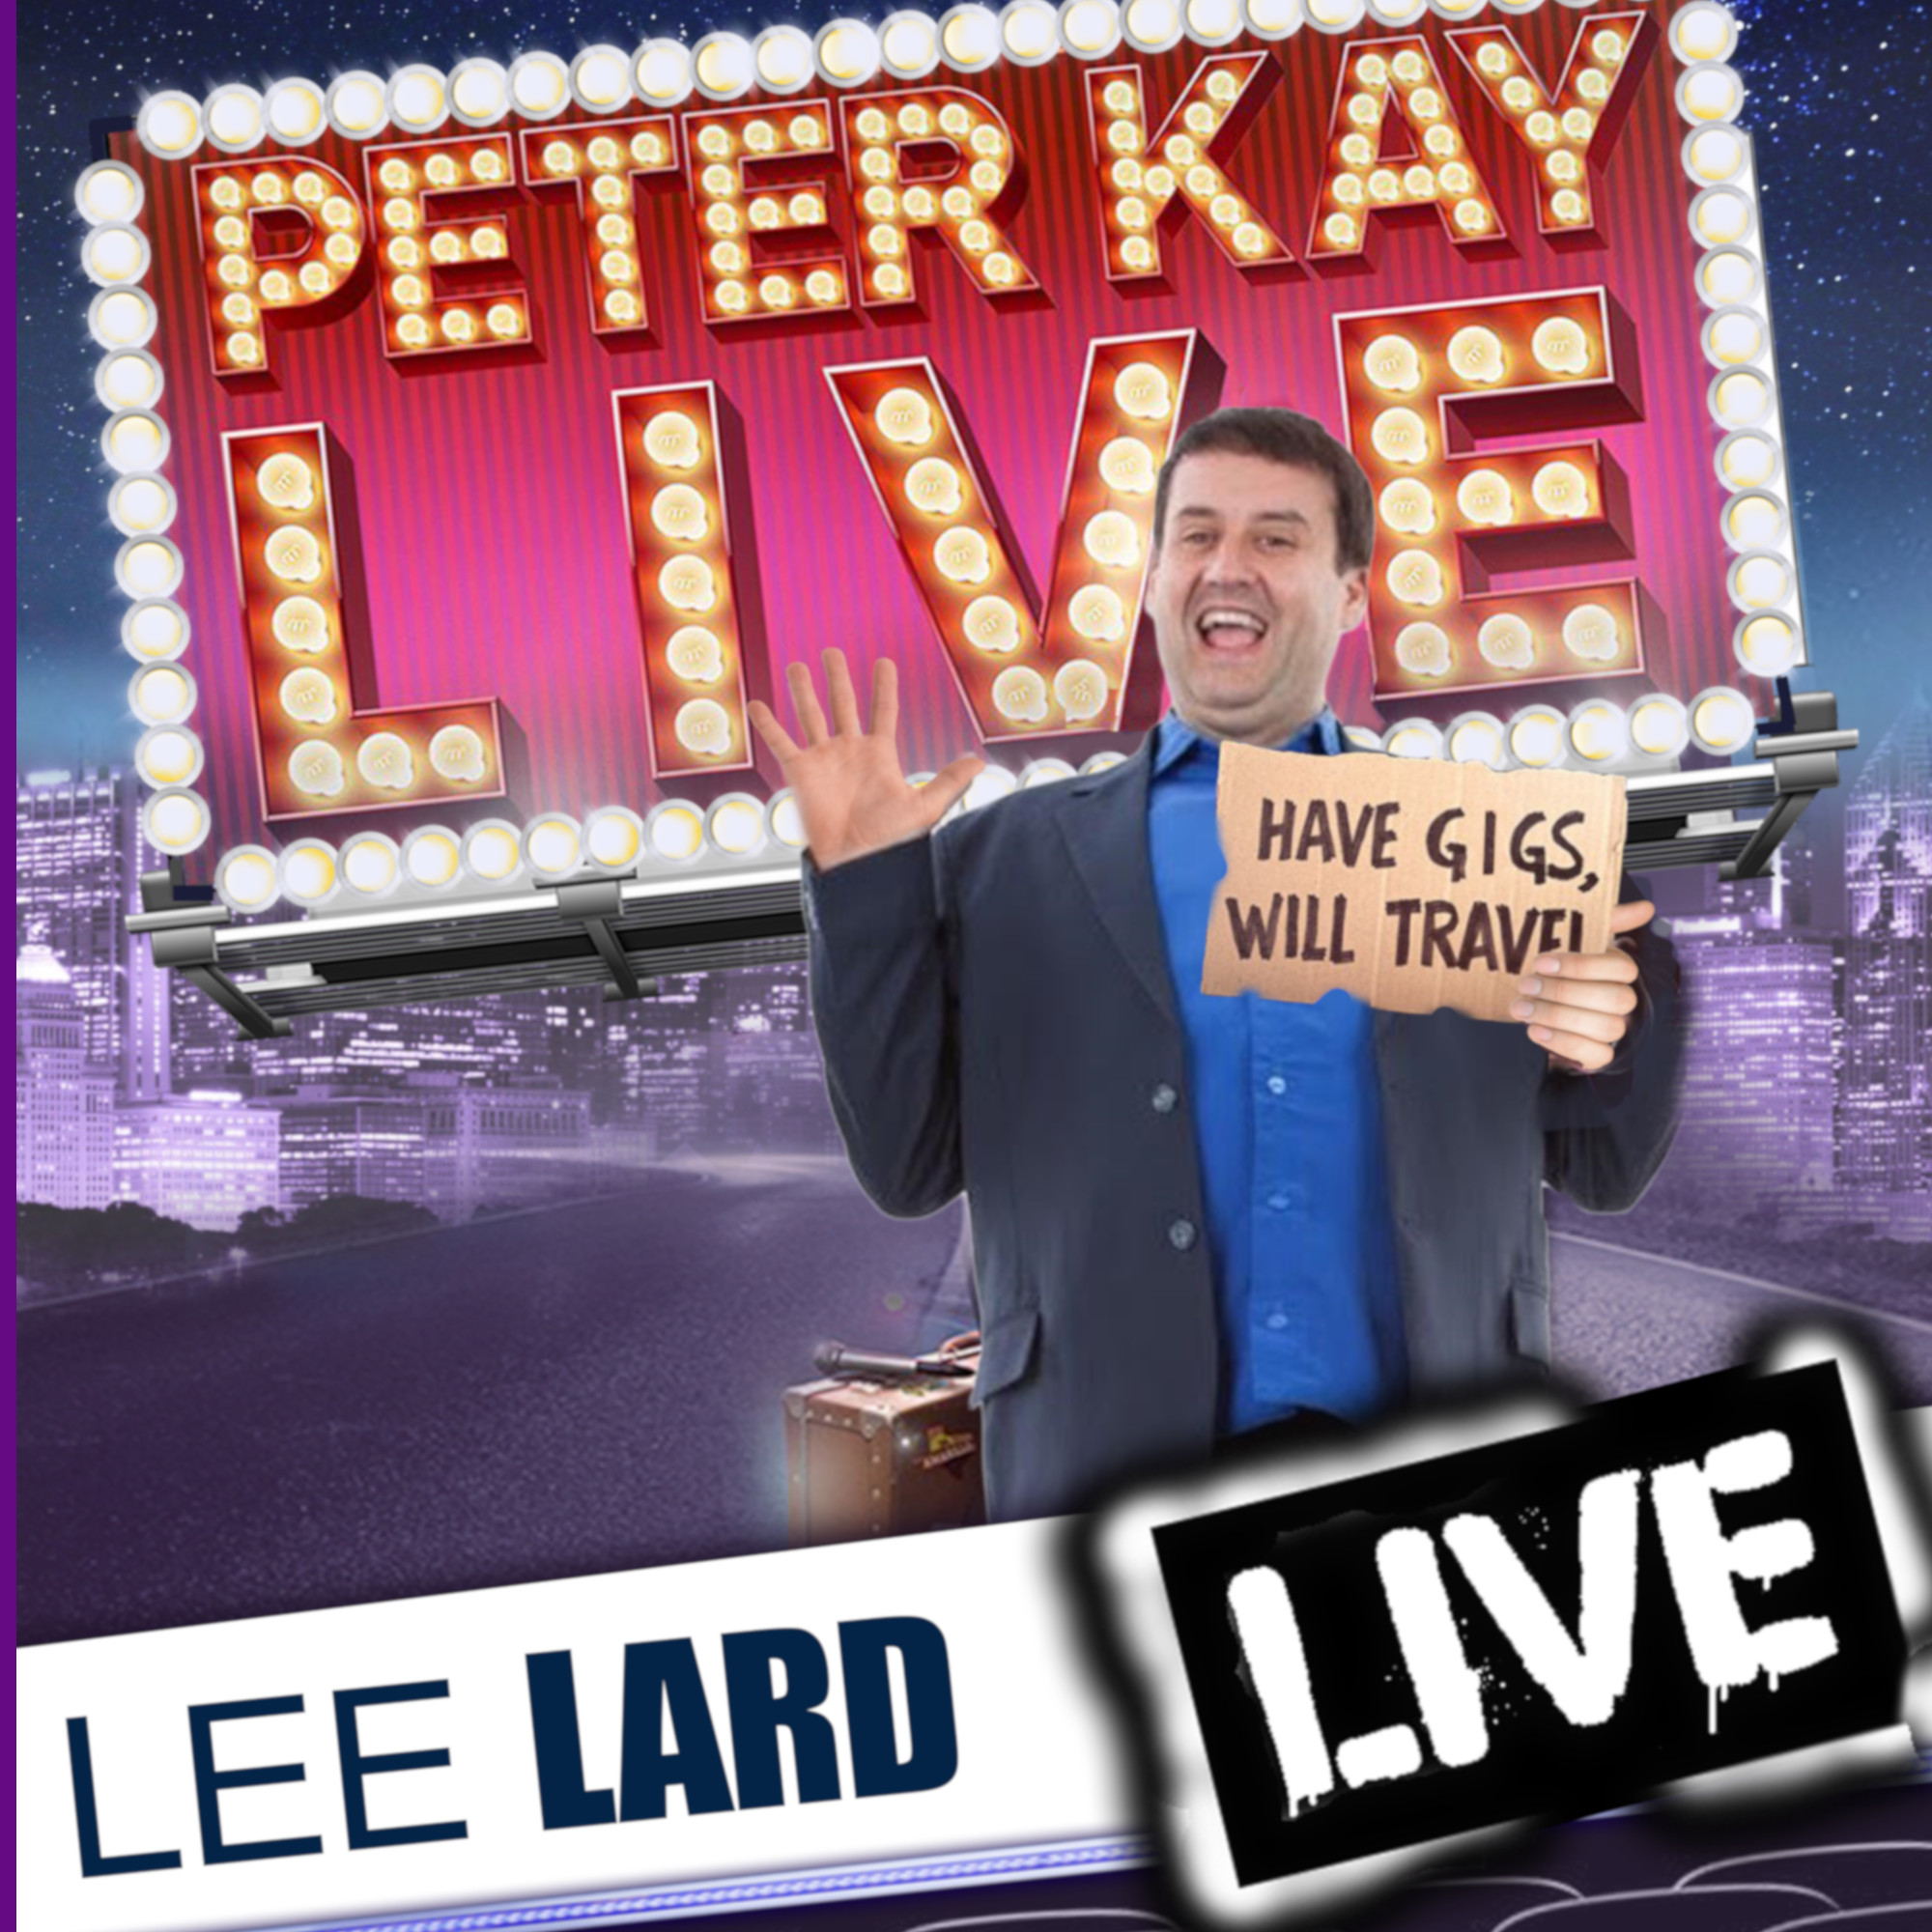 PETER KAY TRIBUTE - Lee Lard